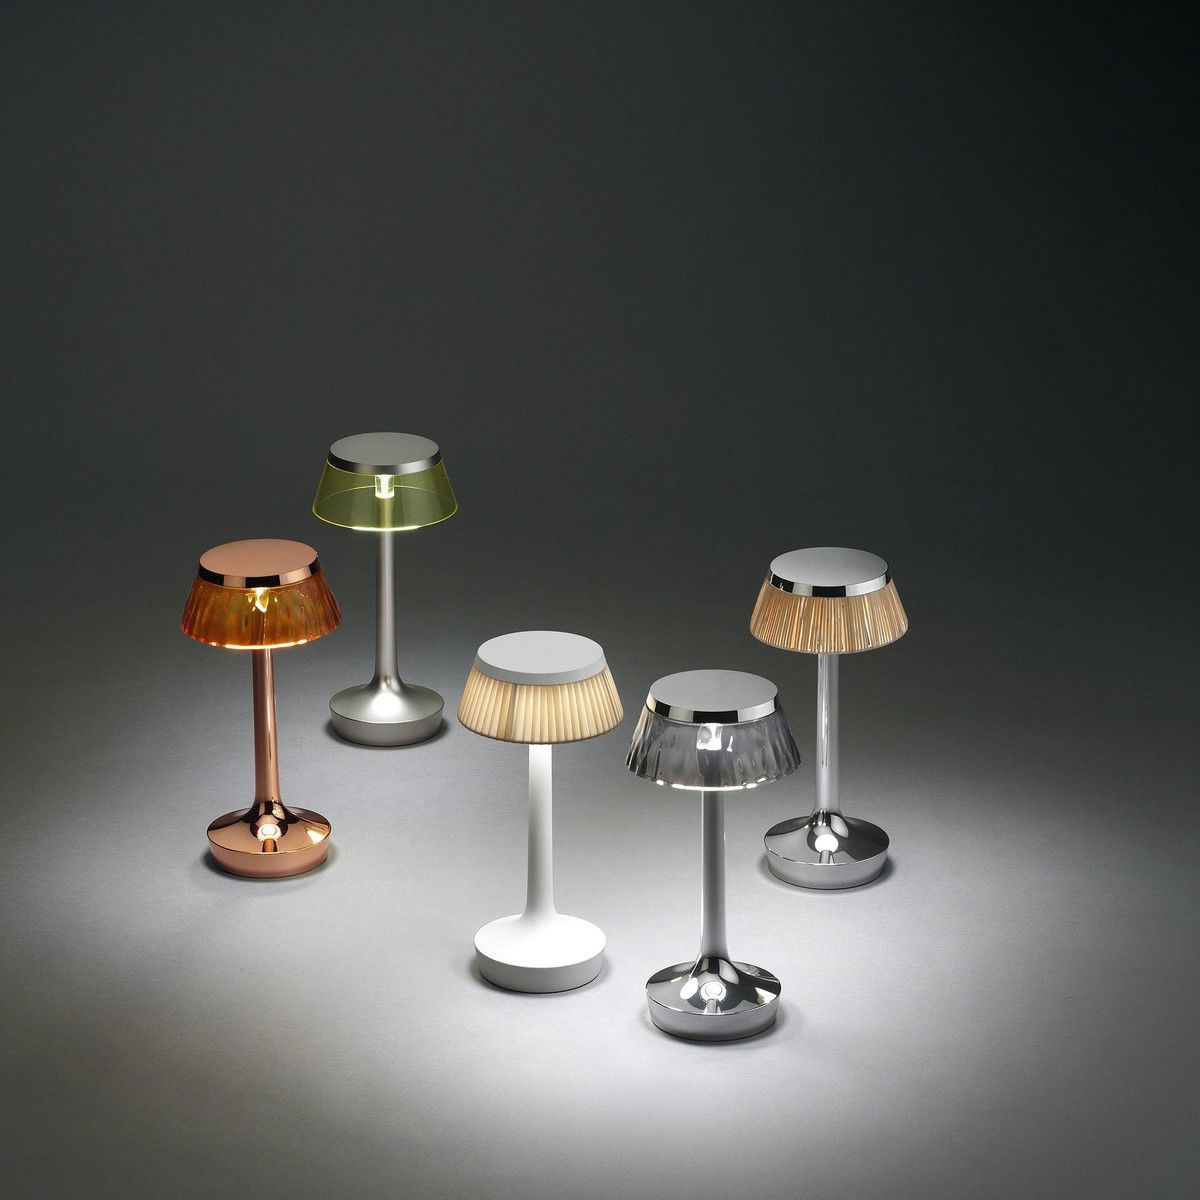 bon jour unplugged led lampe de table flos. Black Bedroom Furniture Sets. Home Design Ideas